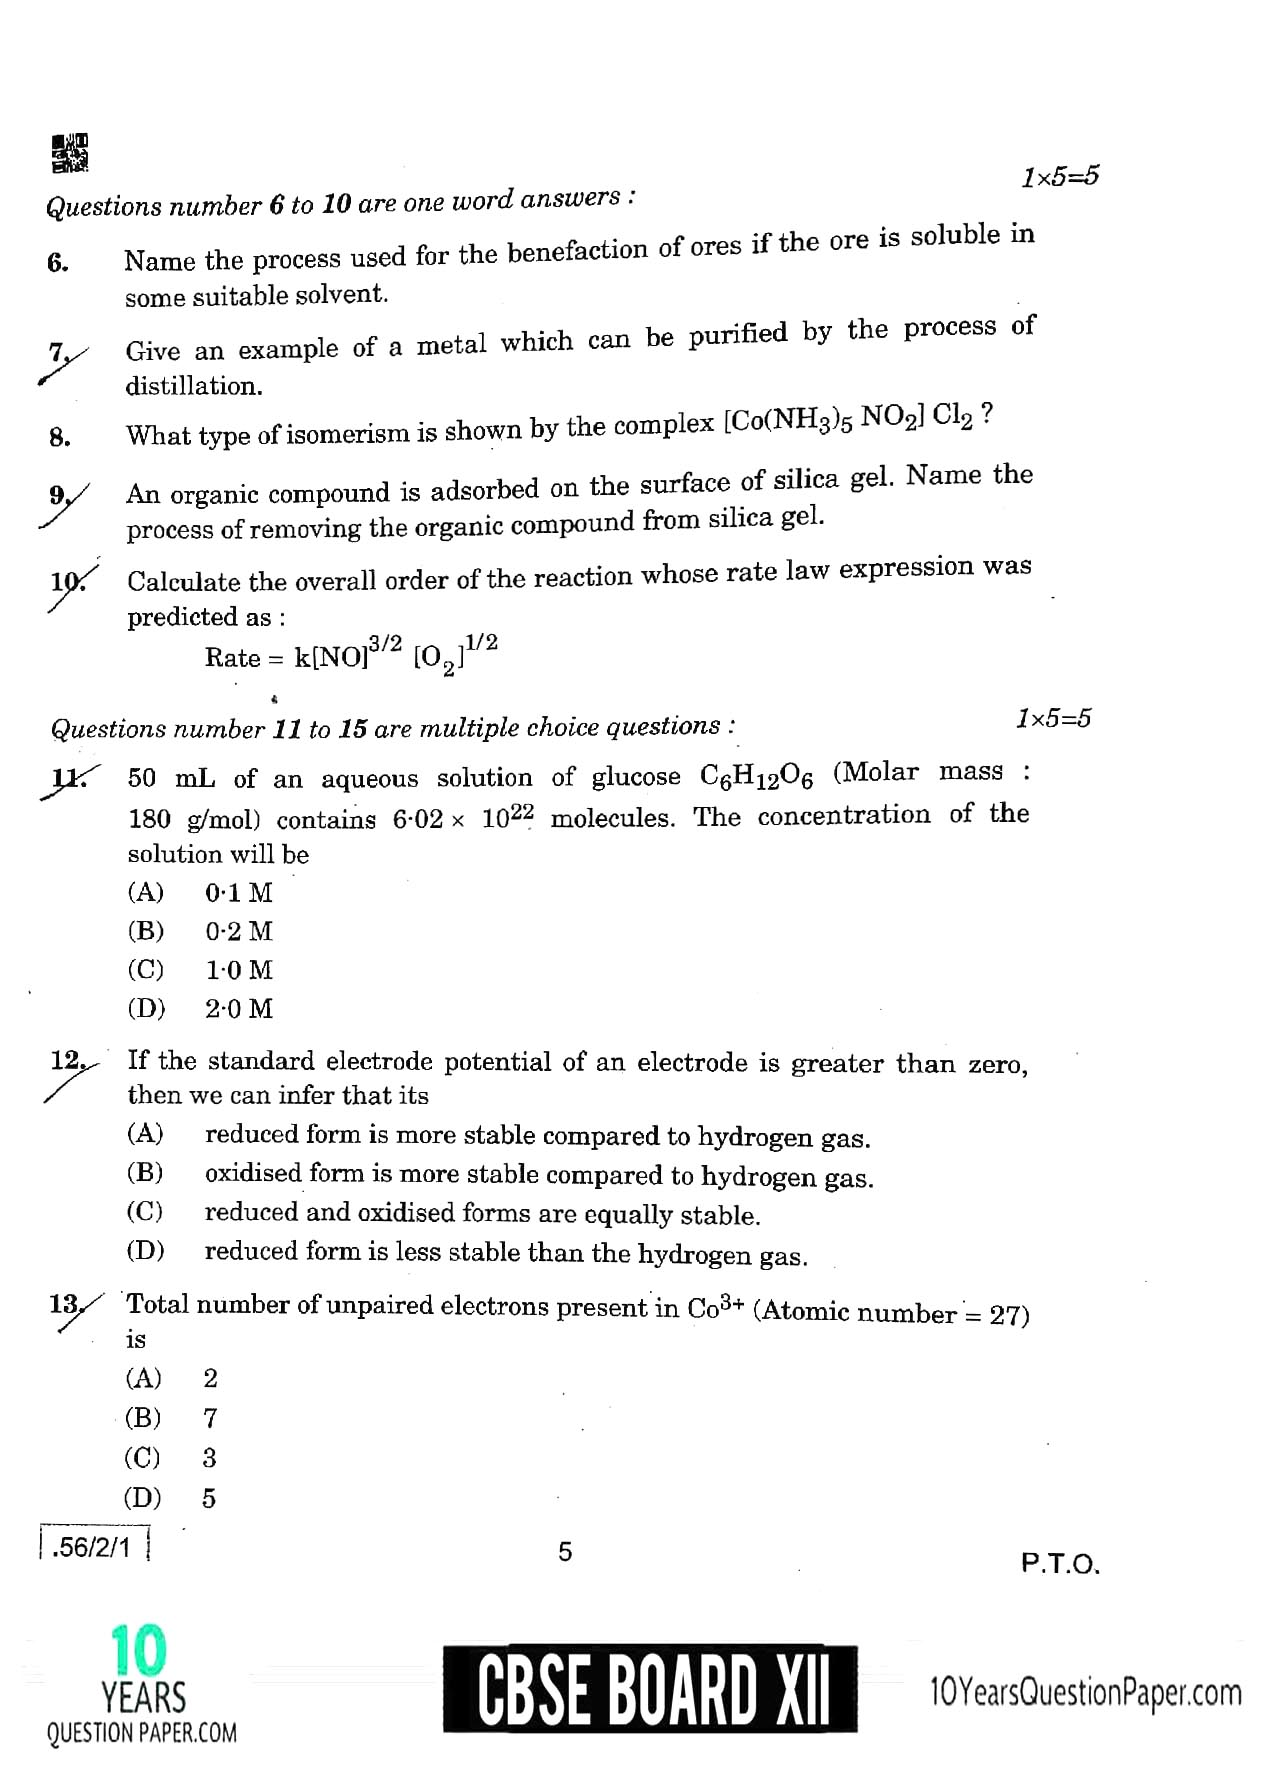 CBSE Class 12 Chemistry 2020 Question Paper 03